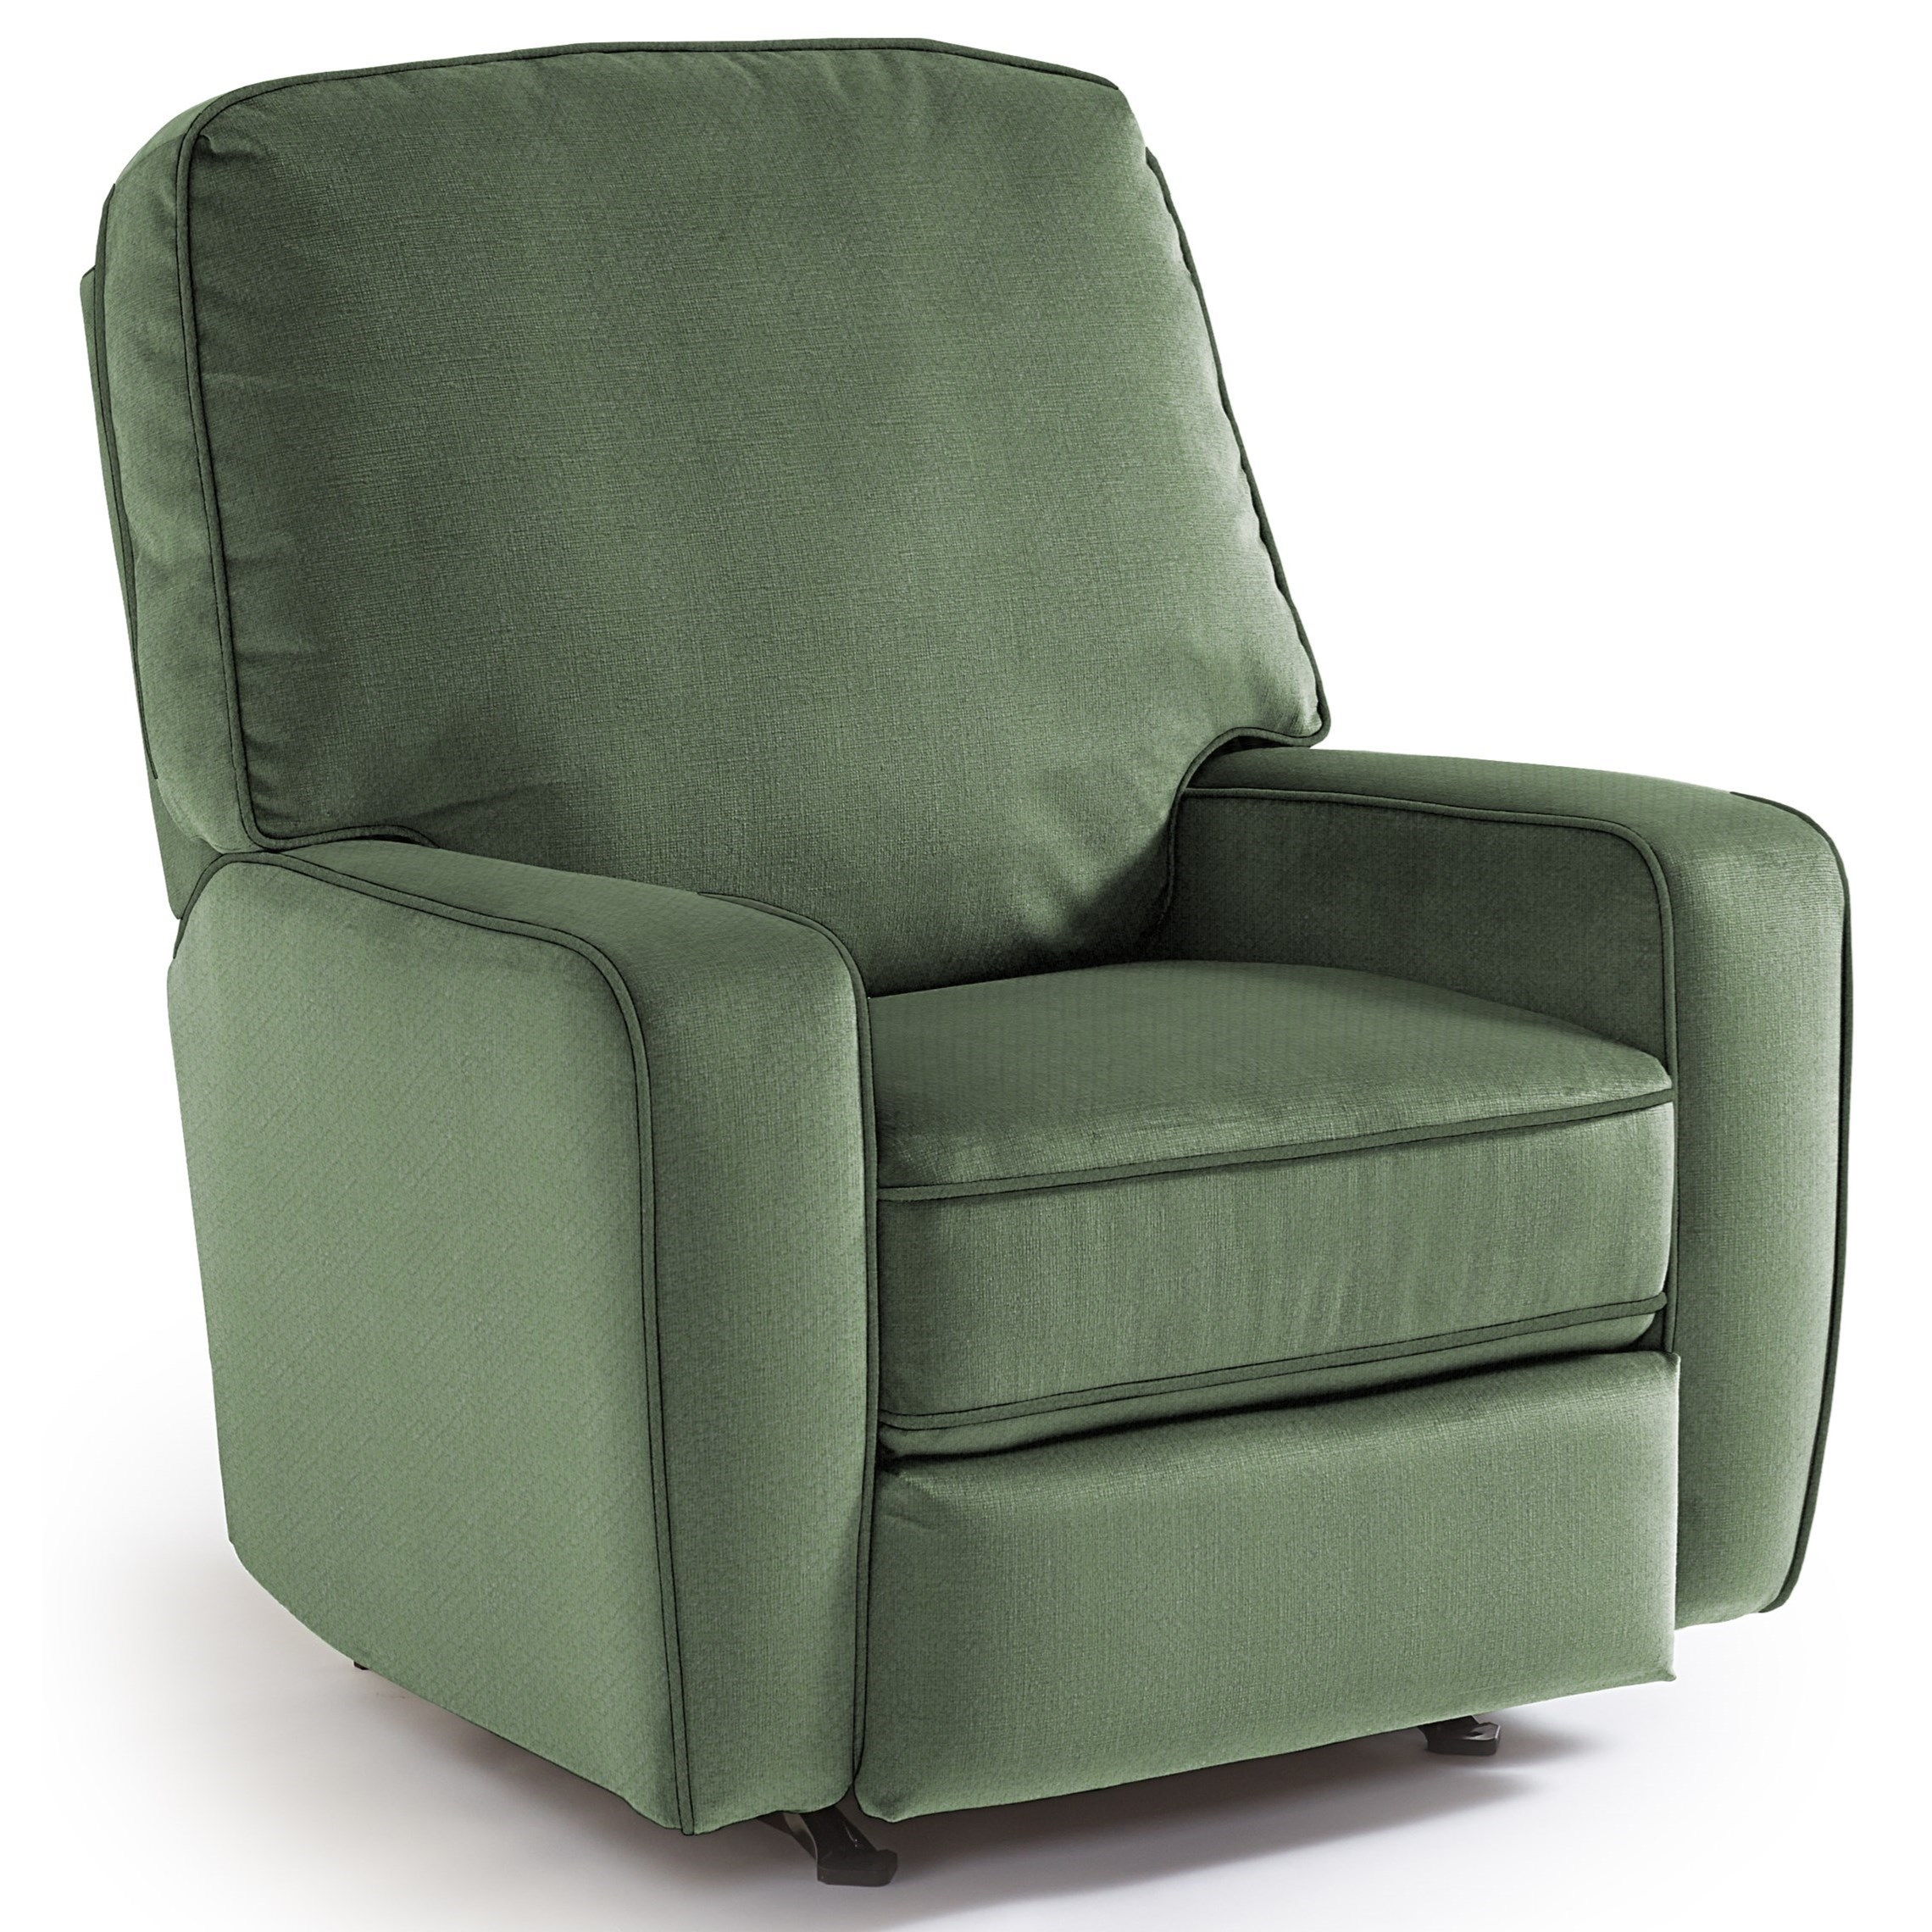 Medium Recliners Bilana Swivel Glider Recliner by Bravo Furniture at Bennett's Furniture and Mattresses